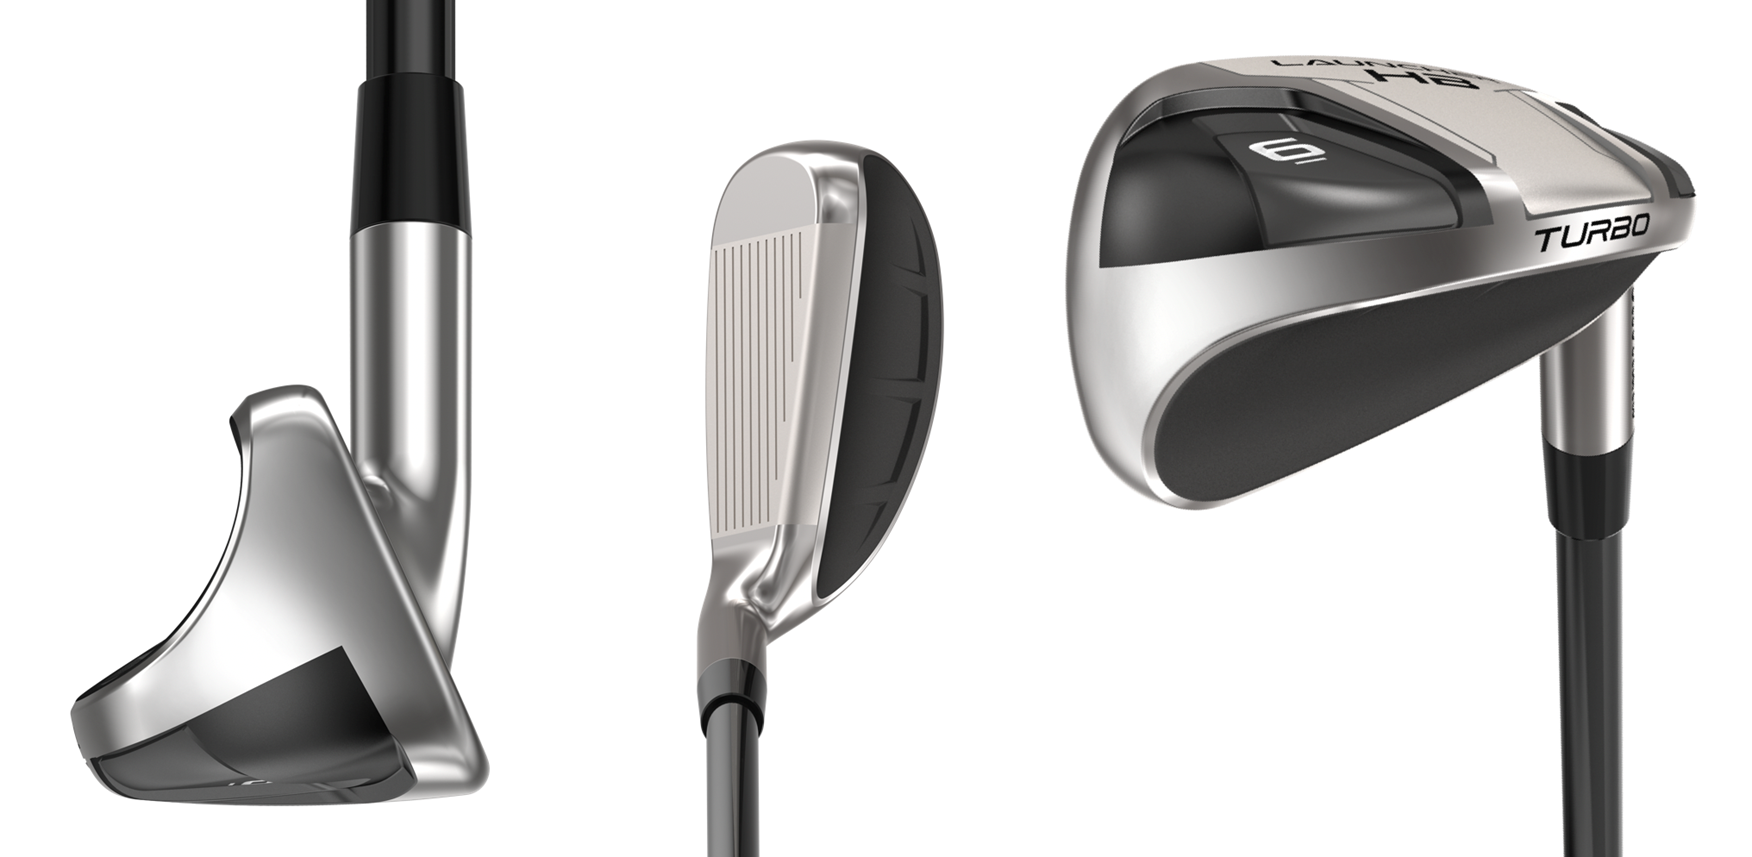 Should you consider a hybrid iron? | Today's Golfer